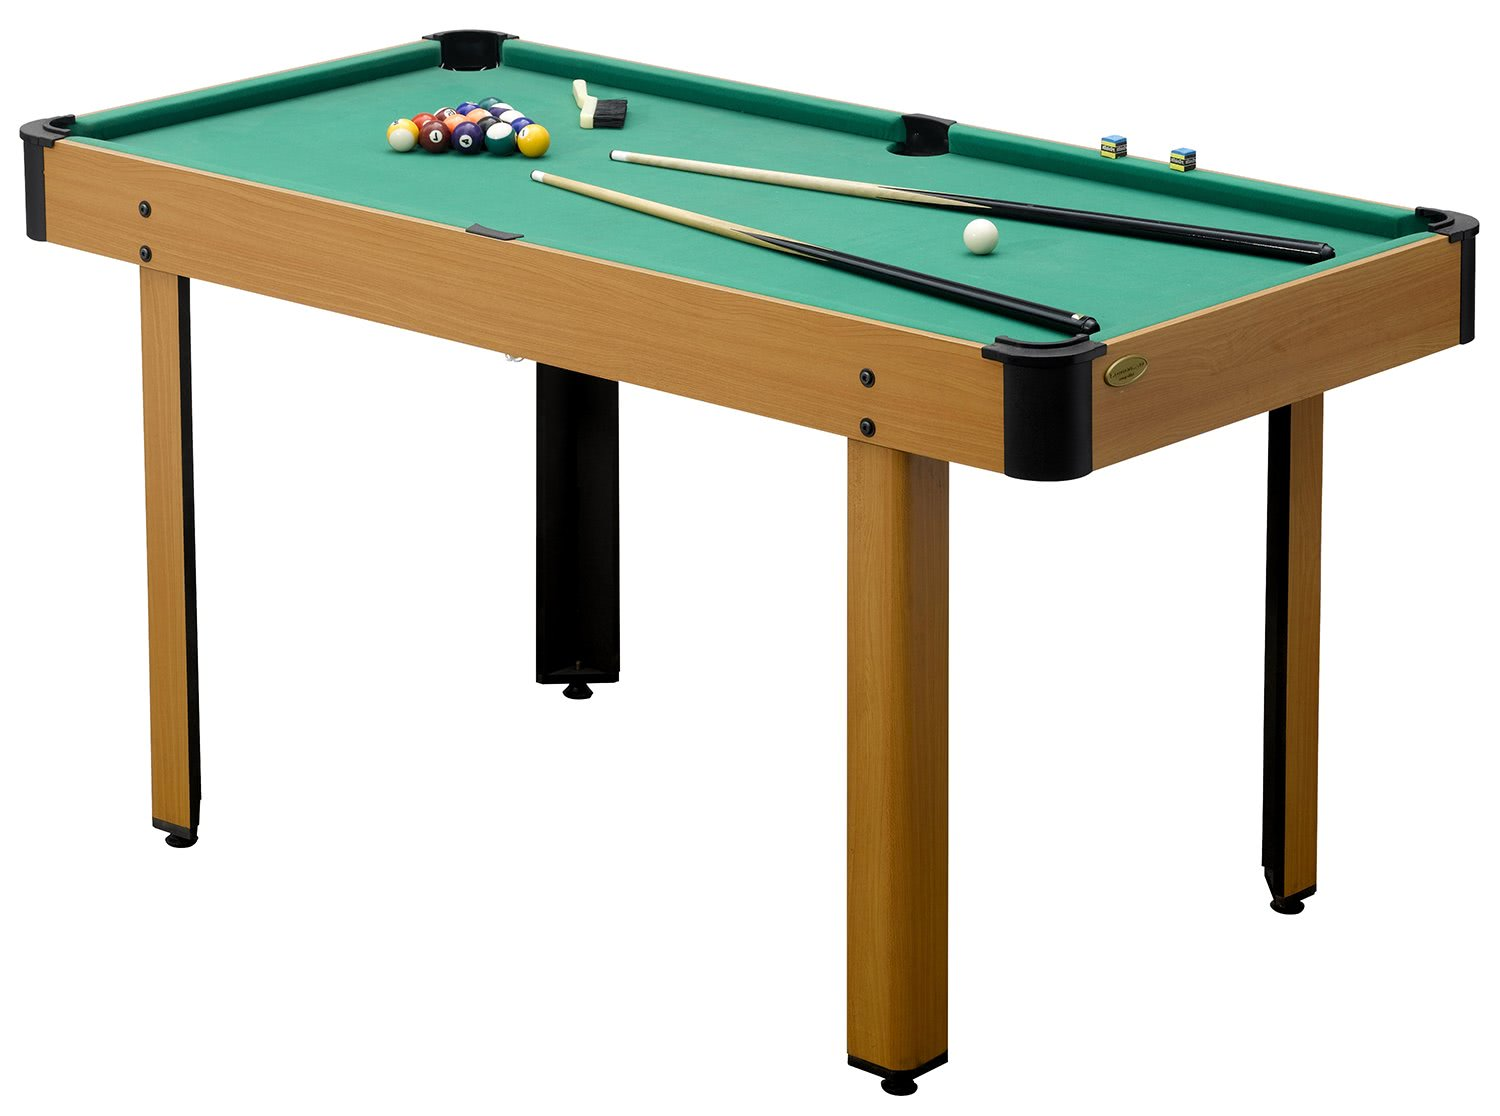 MDF Bed Home Pool Tables | Liberty Games